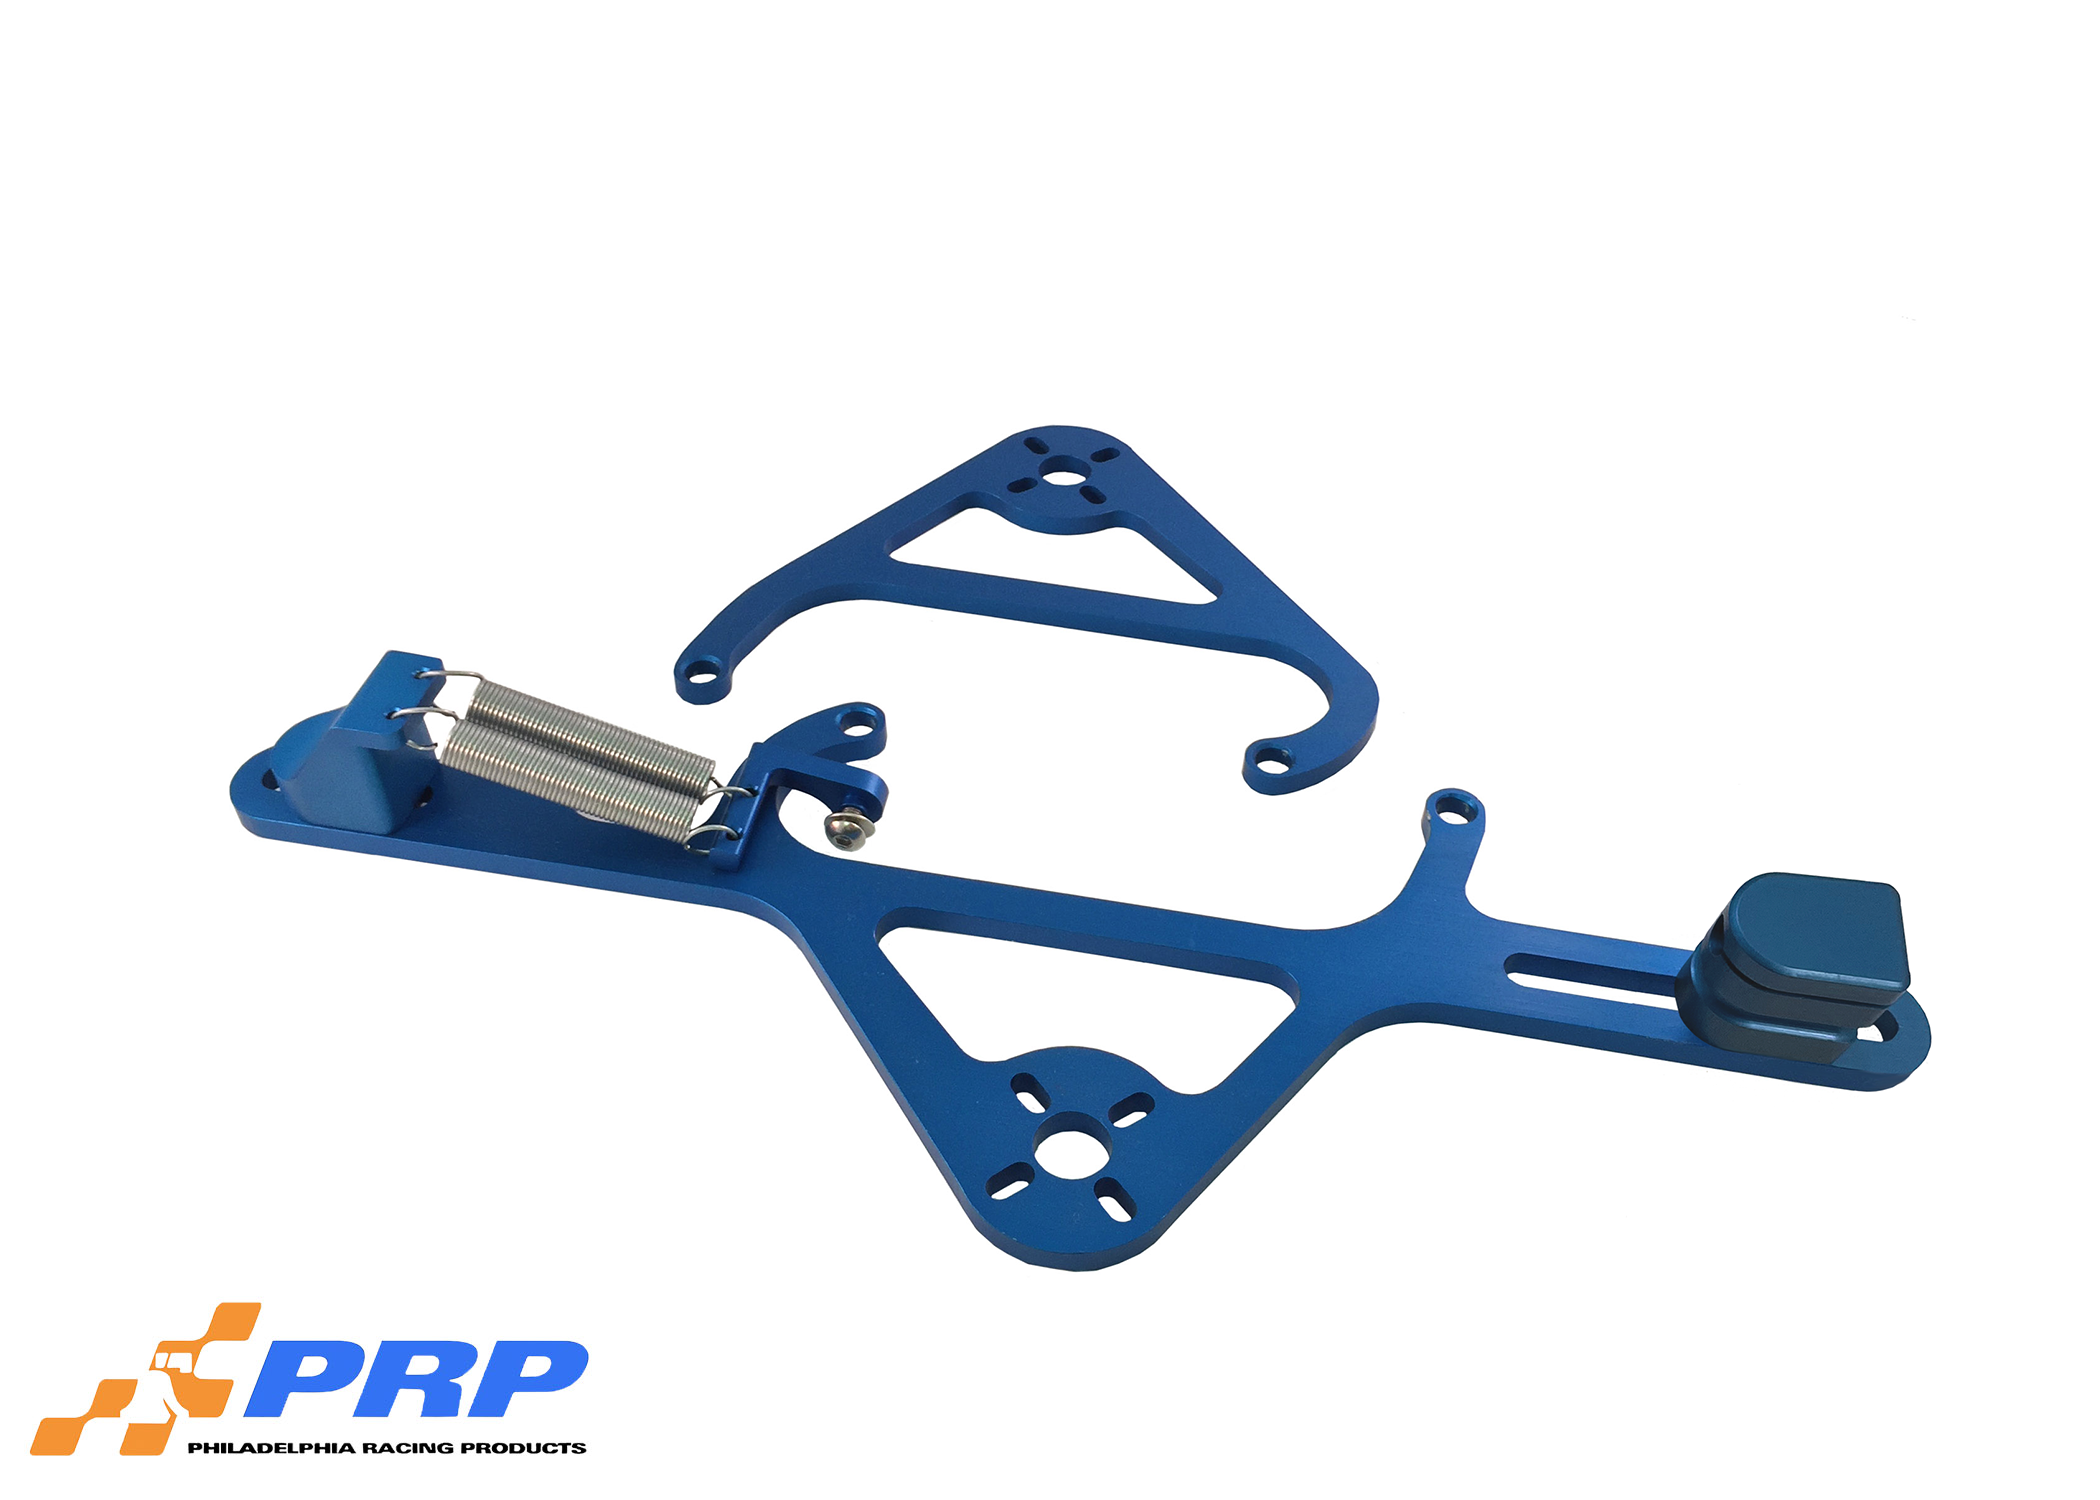 Blue 4500 Nitrous Valve Mounting Brackets with Throttle Bracket made by PRP Racing Products